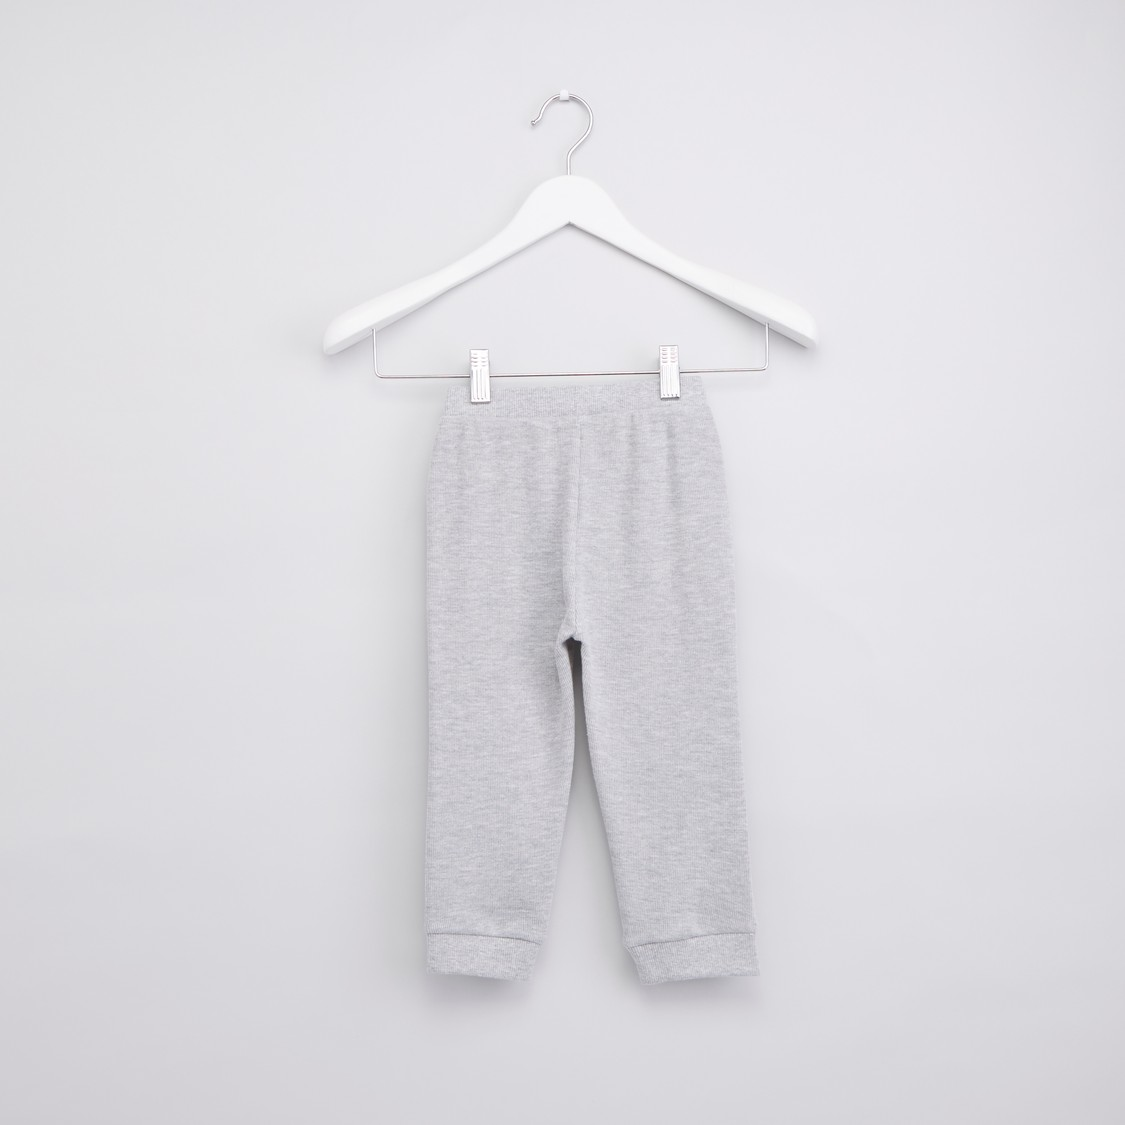 Textured Jog Pants with Drawstring and Elasticised Waistband